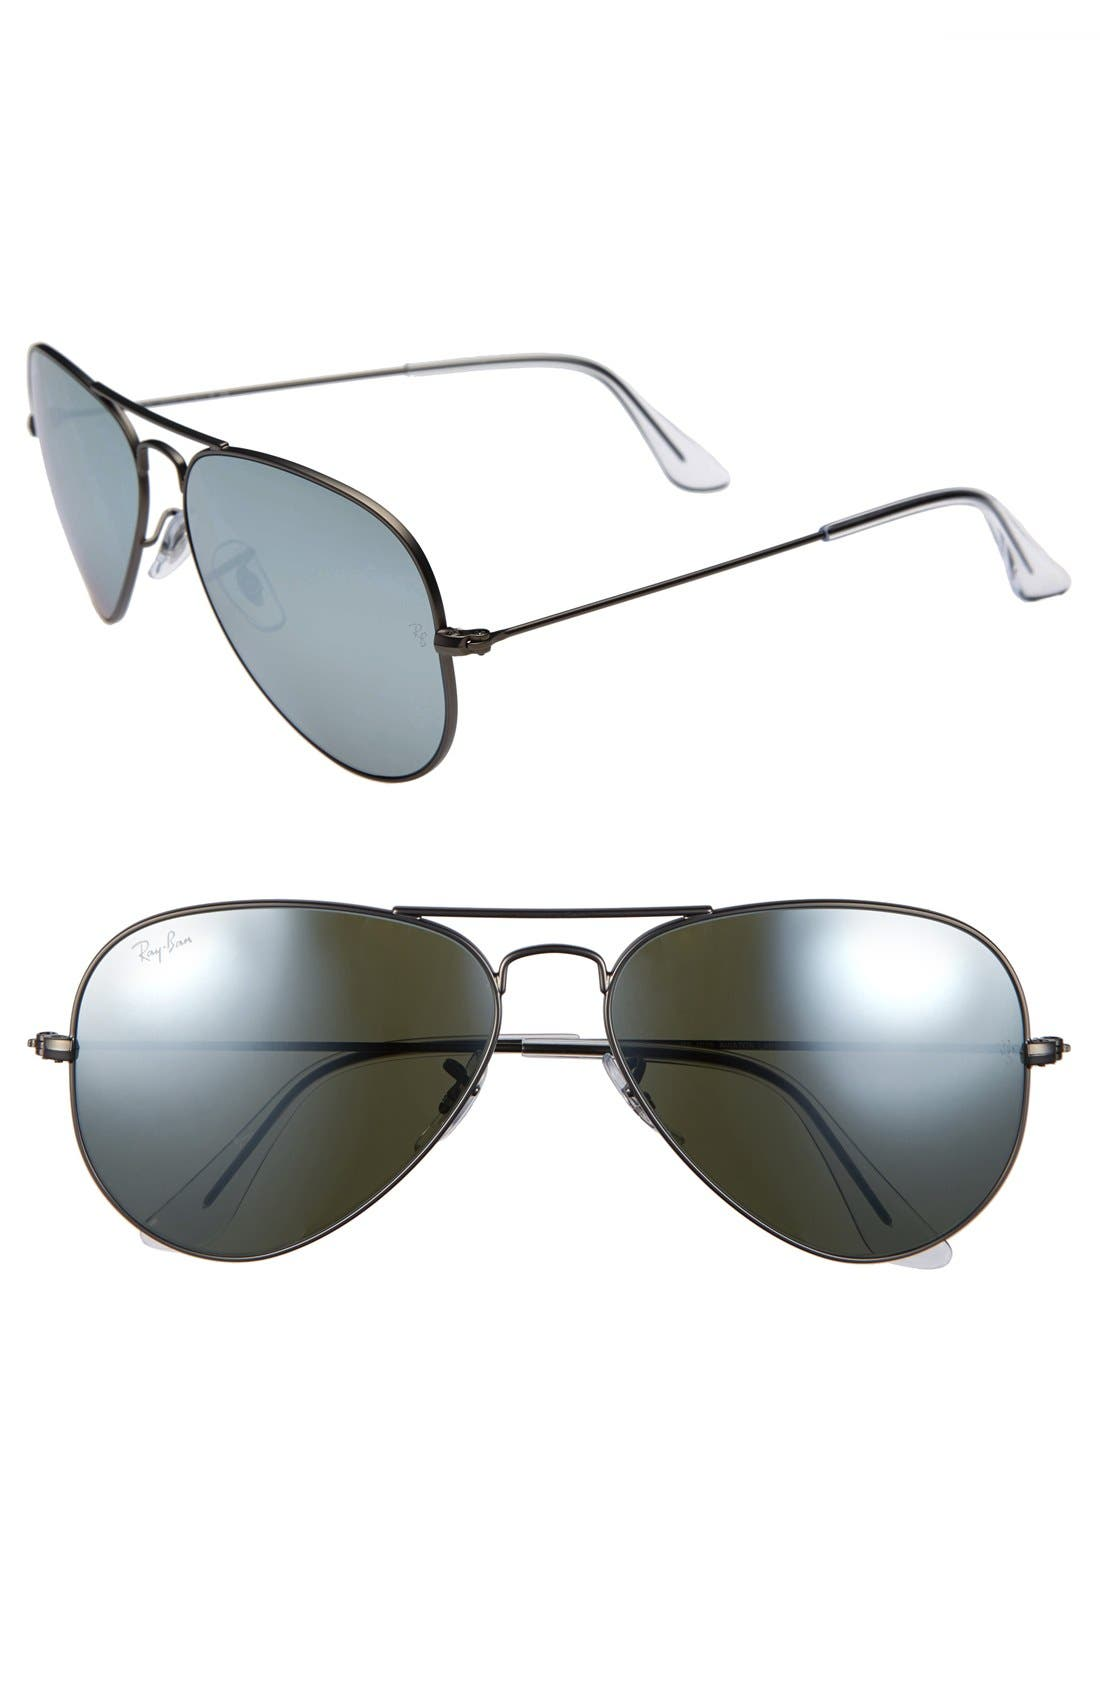 Main Image - Ray-Ban Original Aviator 58mm Sunglasses